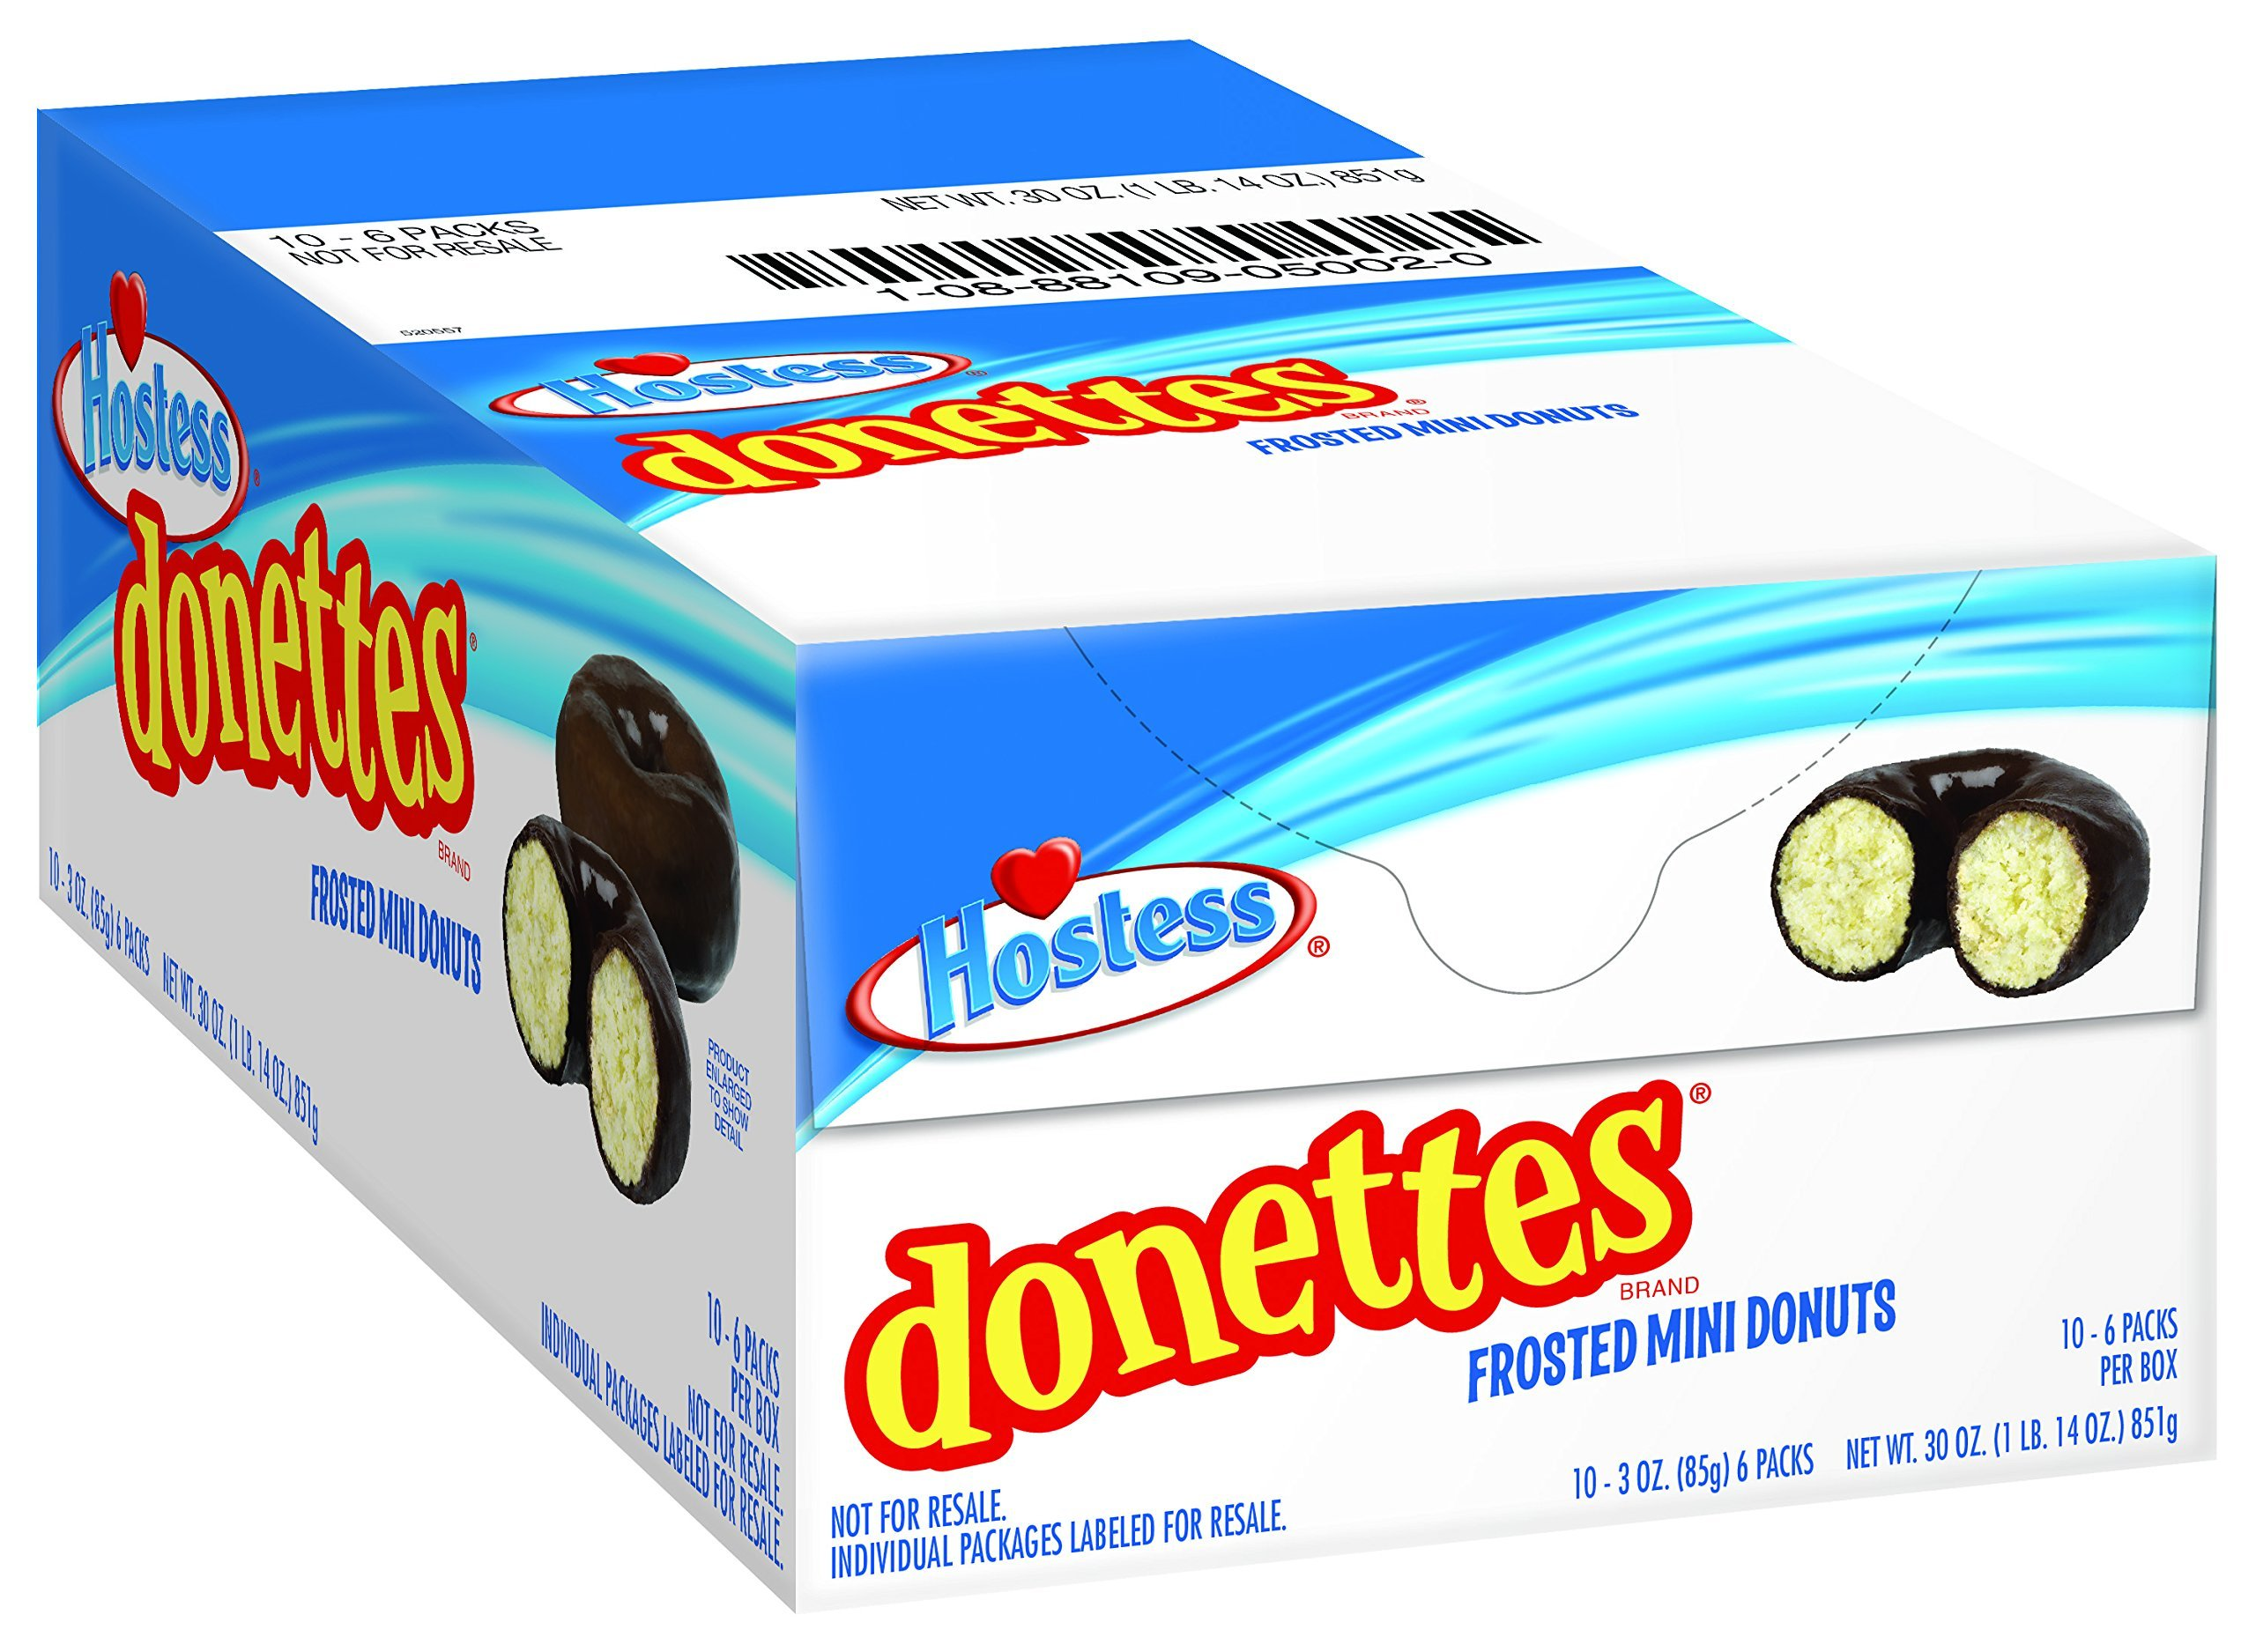 Hostess Donettes Mini Donuts, Frosted, 3 Ounce, 10 Count by Hostess